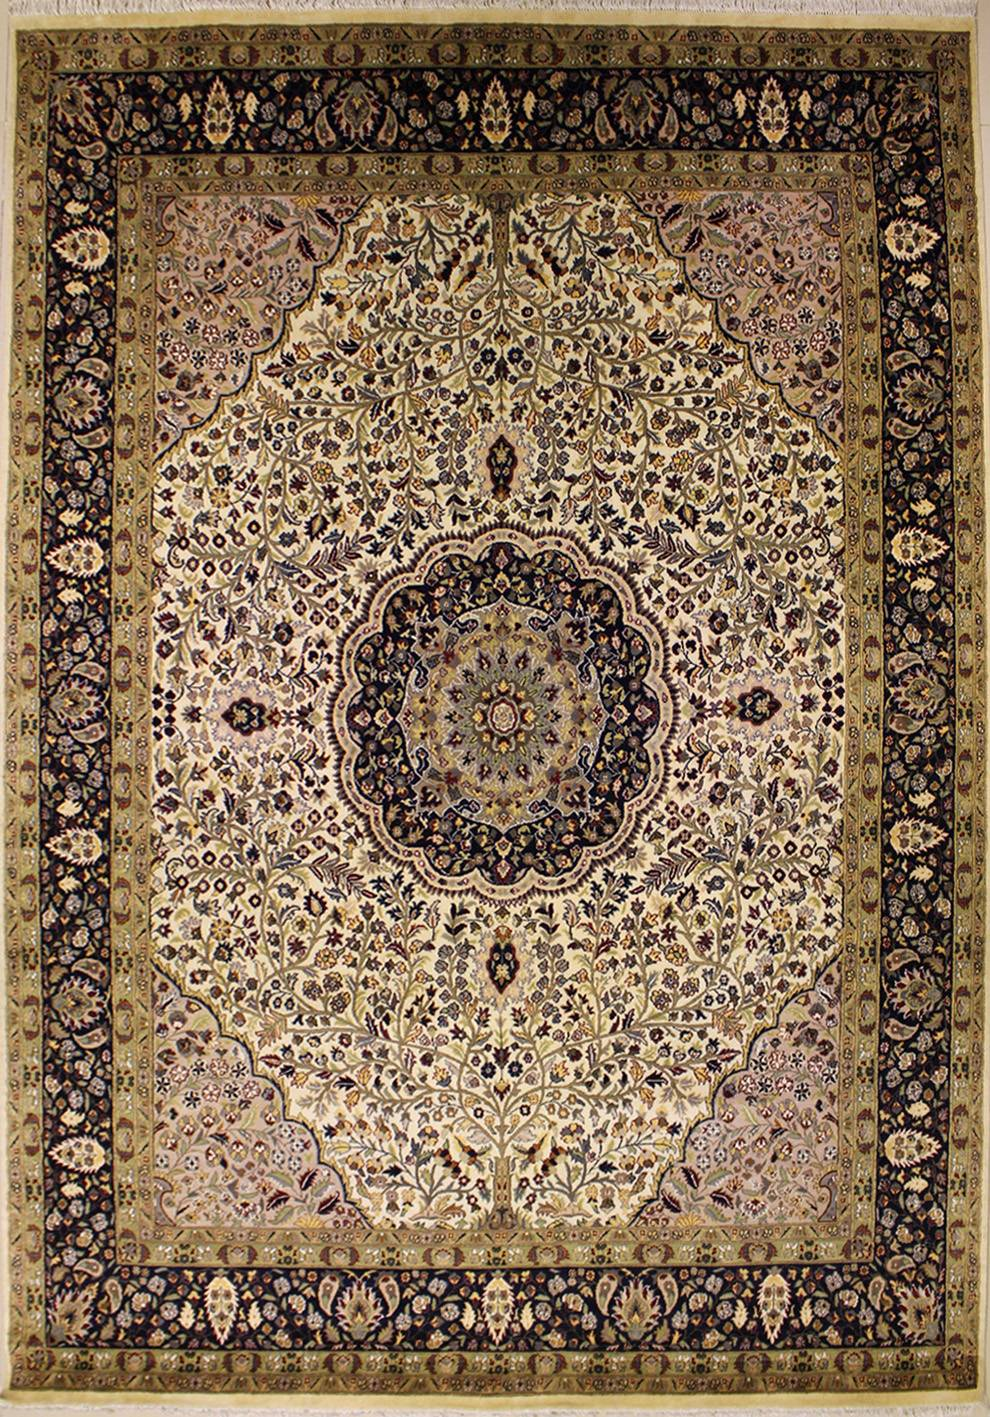 8 39 11x12 39 4 rug floral handmade pak persian high quality